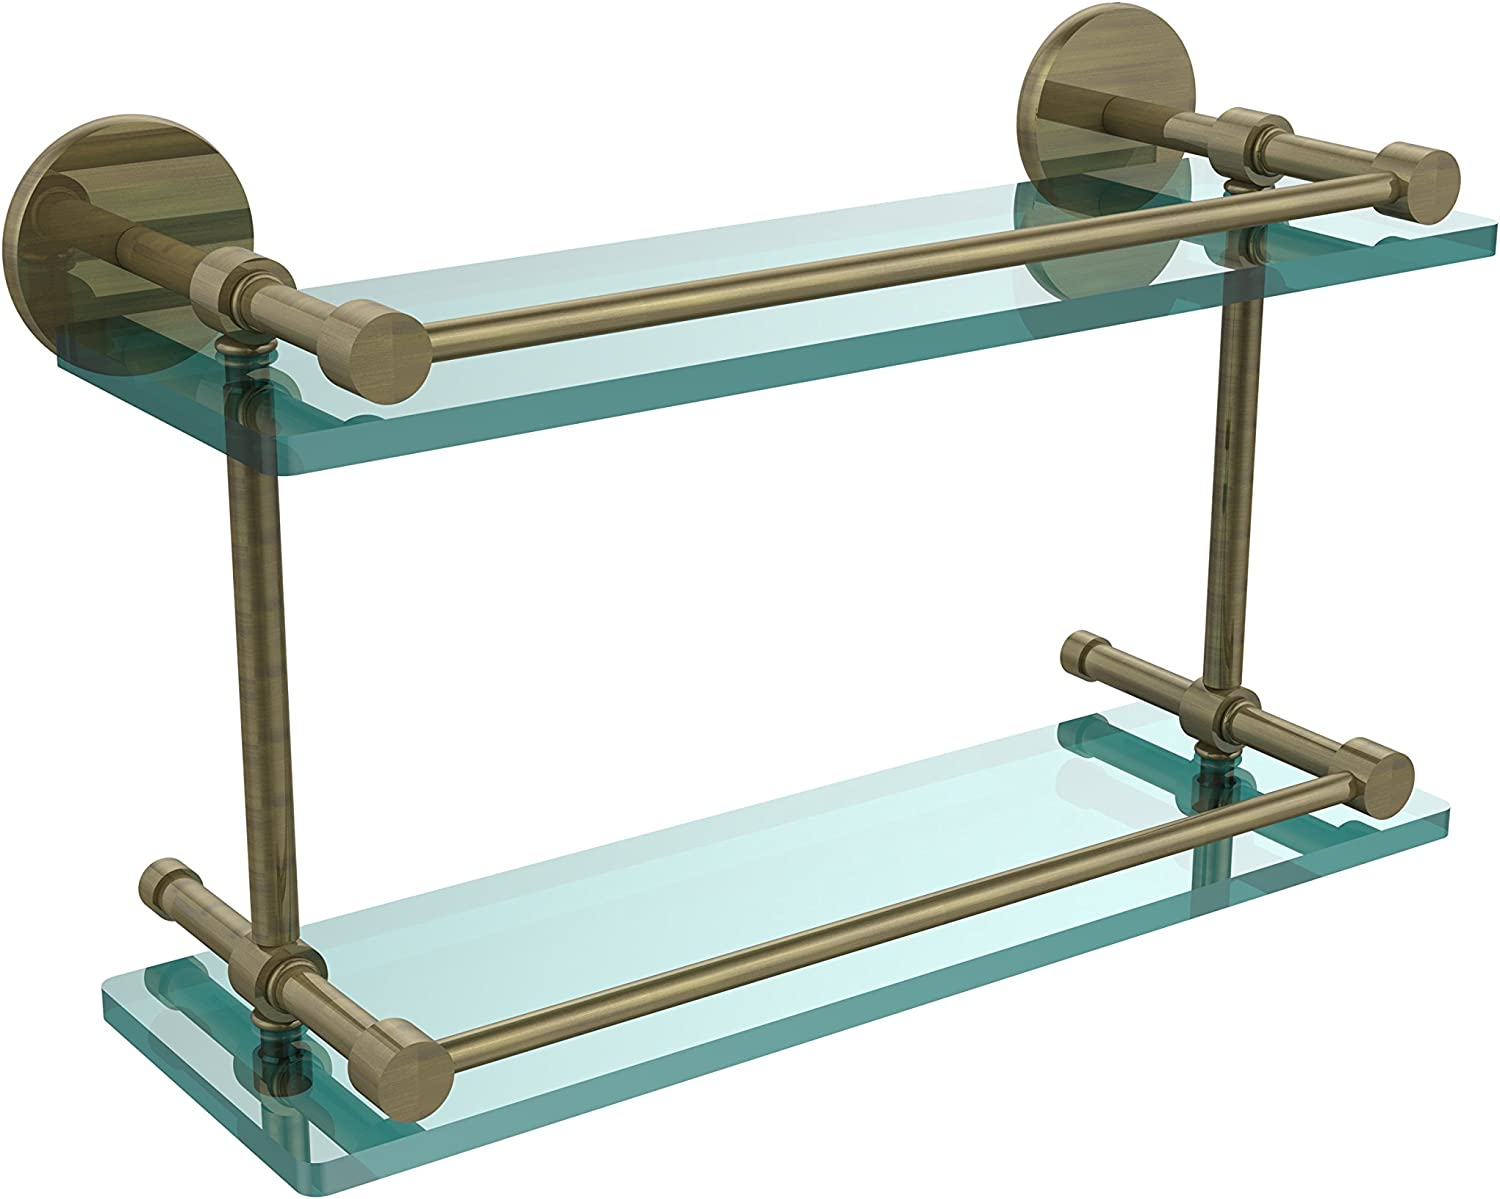 Allied Brass P1000-2 16-GAL-ABR 16-Inch Tempered Double Glass Shelf with Gallery Rail, Antique Brass